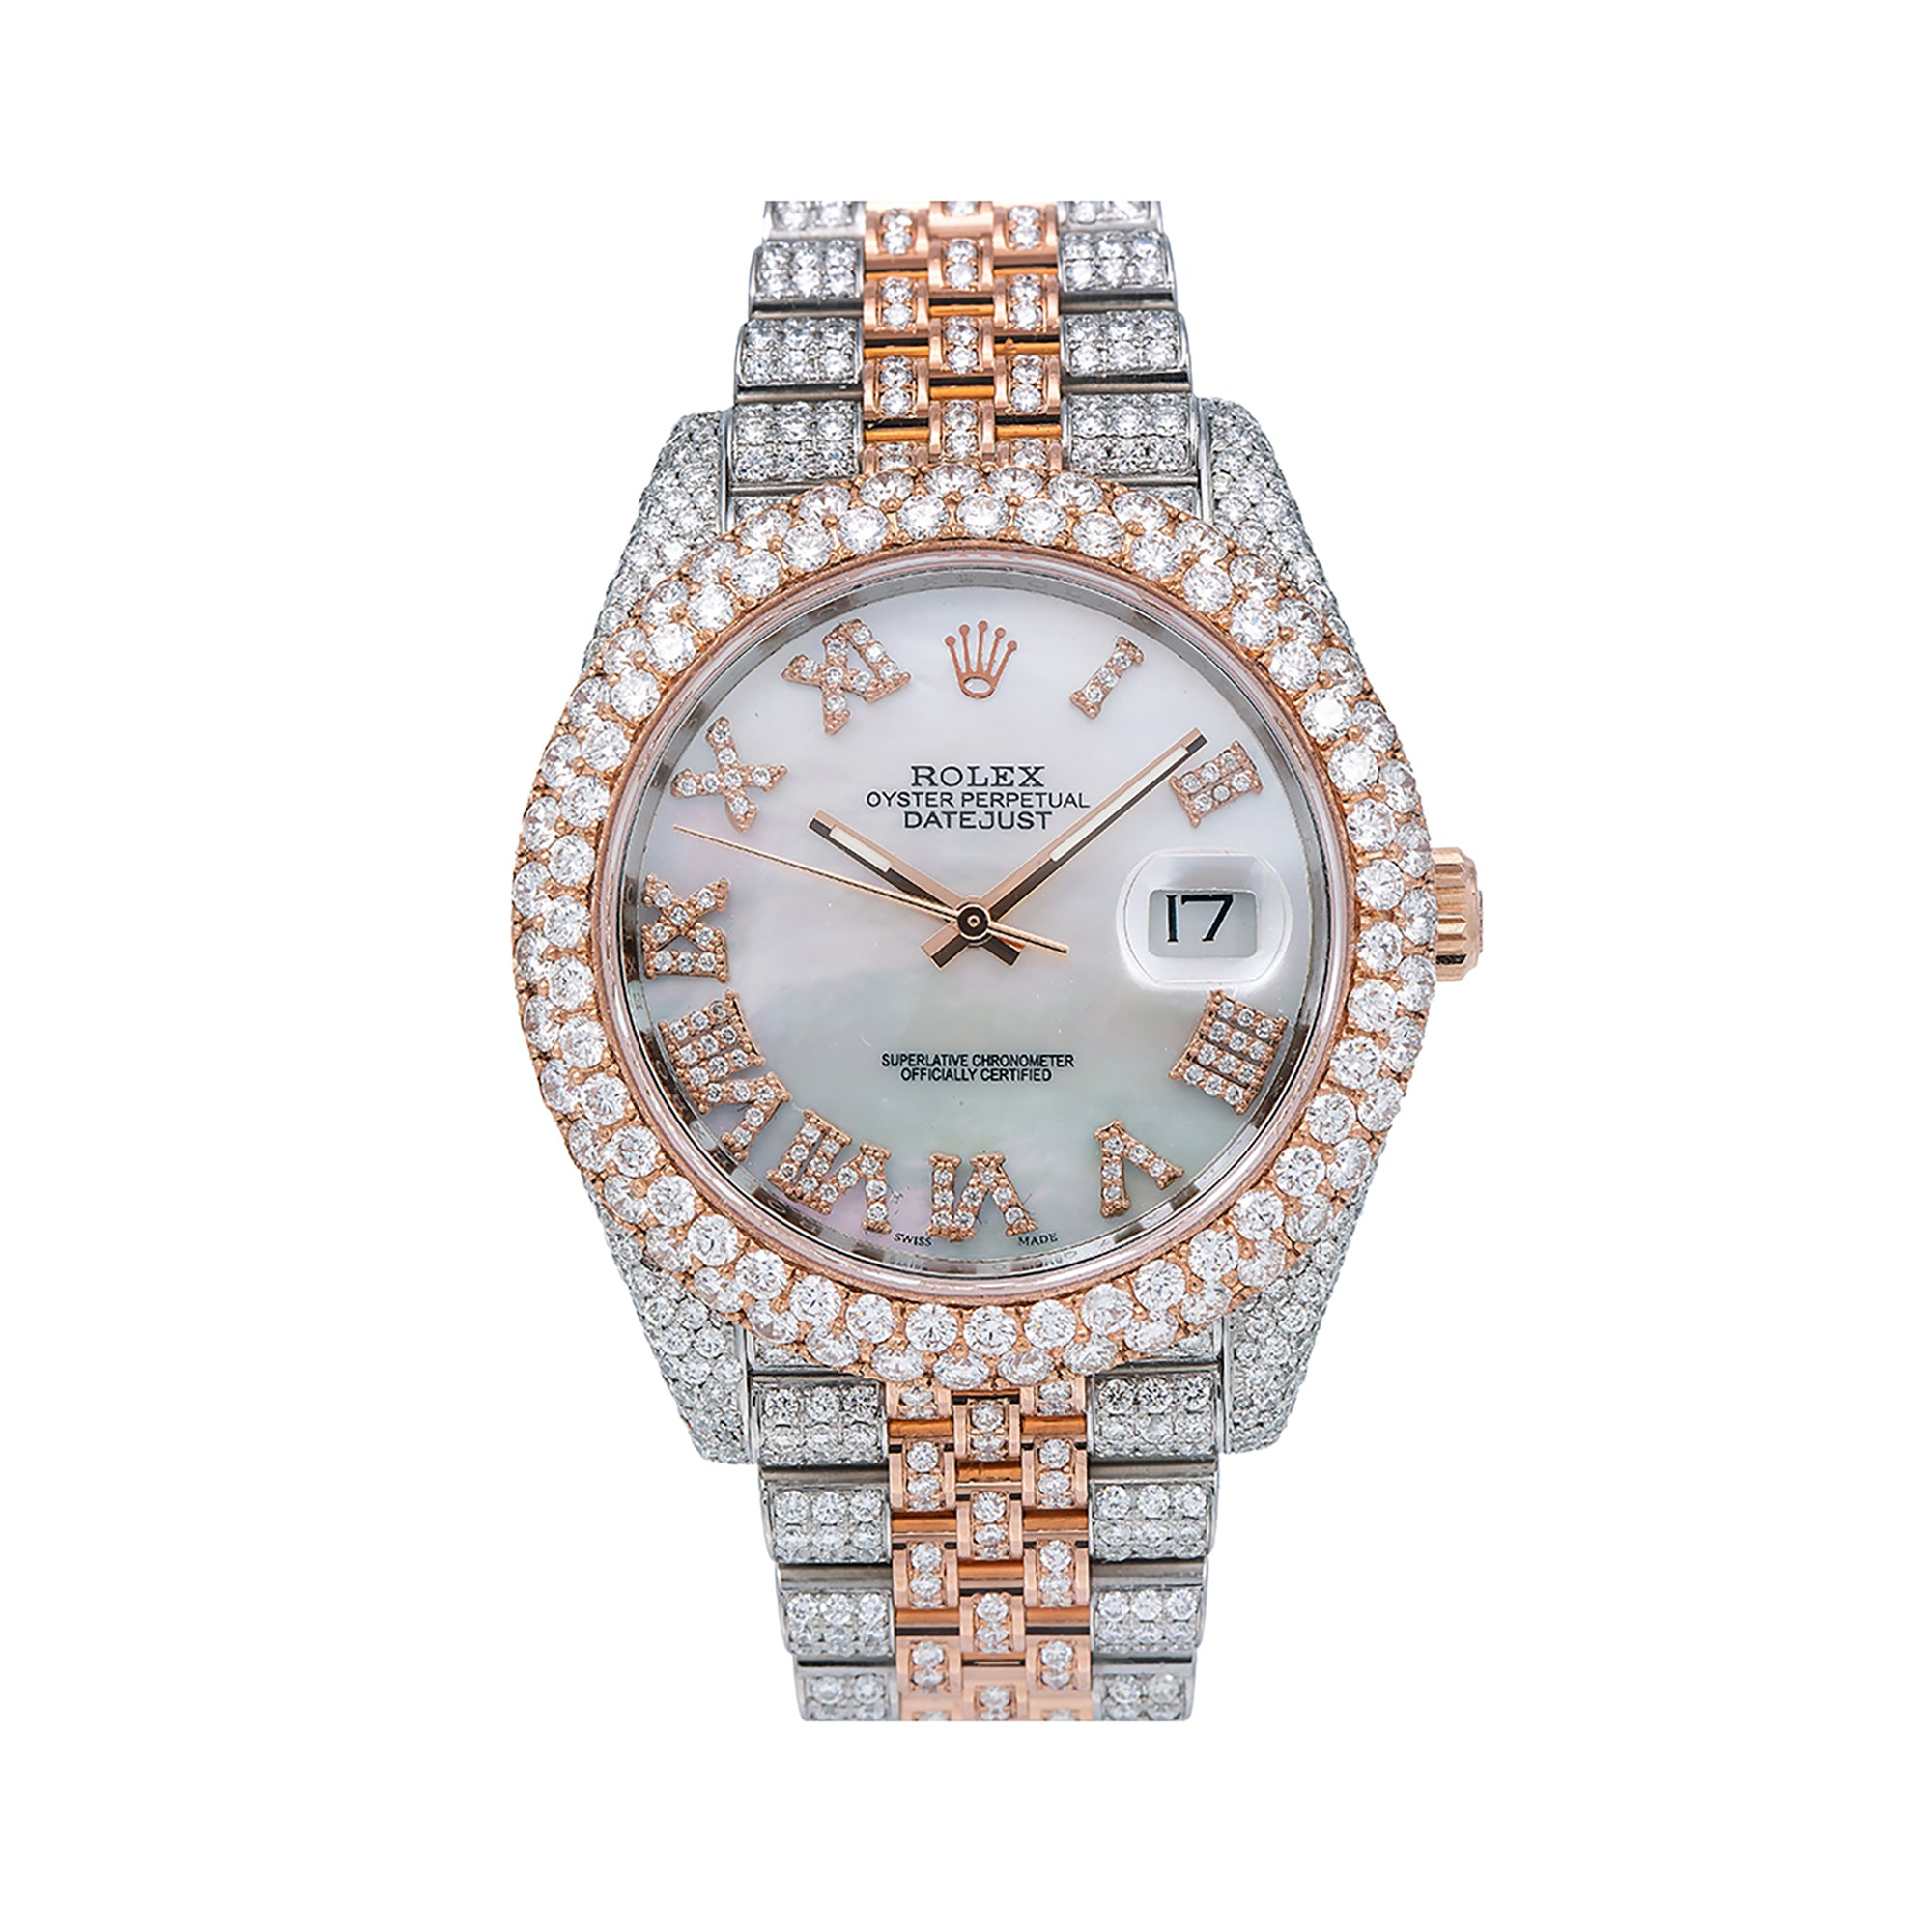 Rolex Datejust II 126331 41MM White Mother of Pearl Diamond Dial With 19.25 CT Diamonds